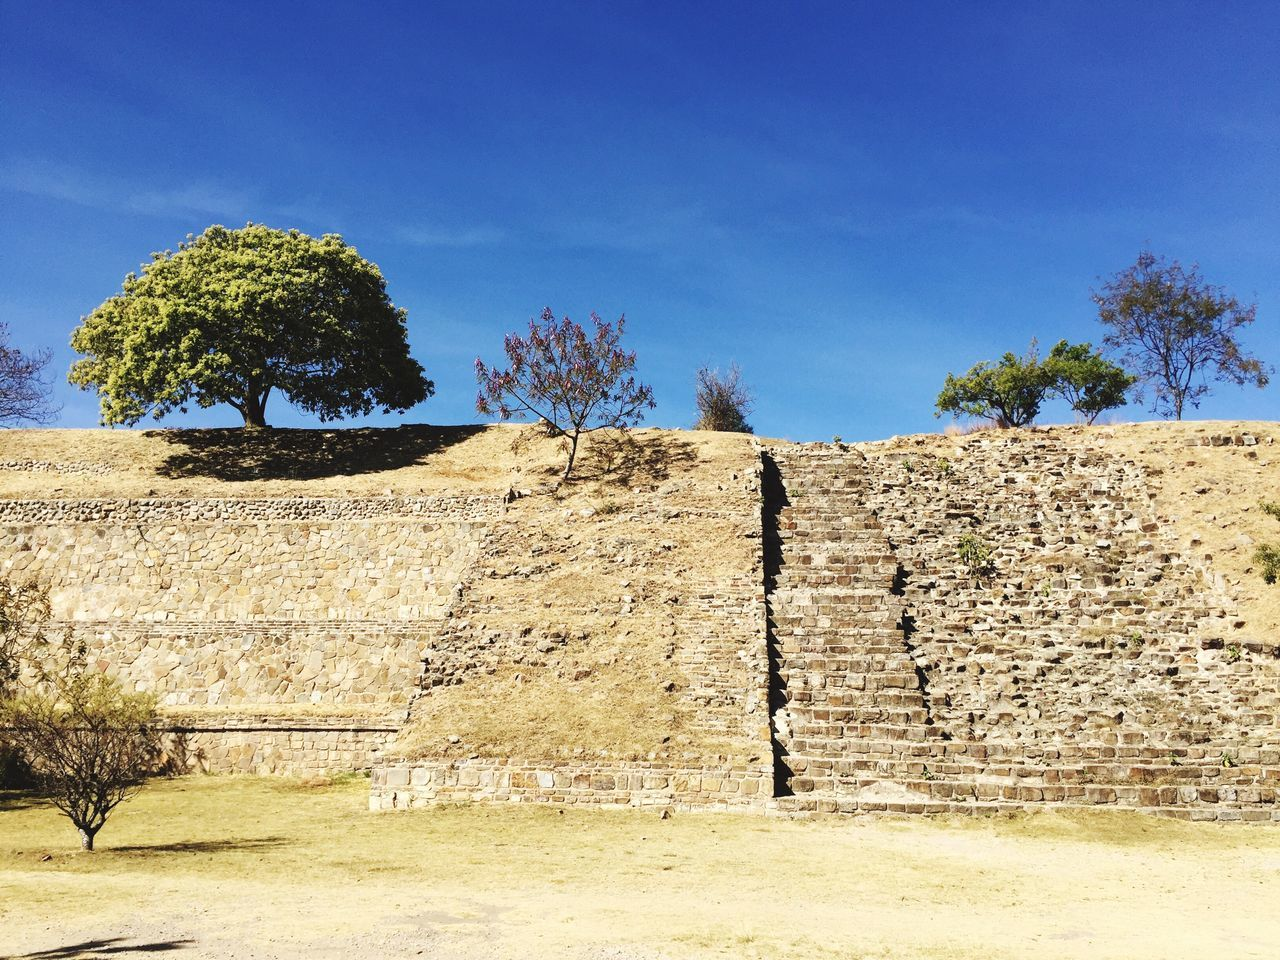 Monte Alban No People Nature Tree Built Structure Day Architecture Outdoors Growth Low Angle View Building Exterior Sky